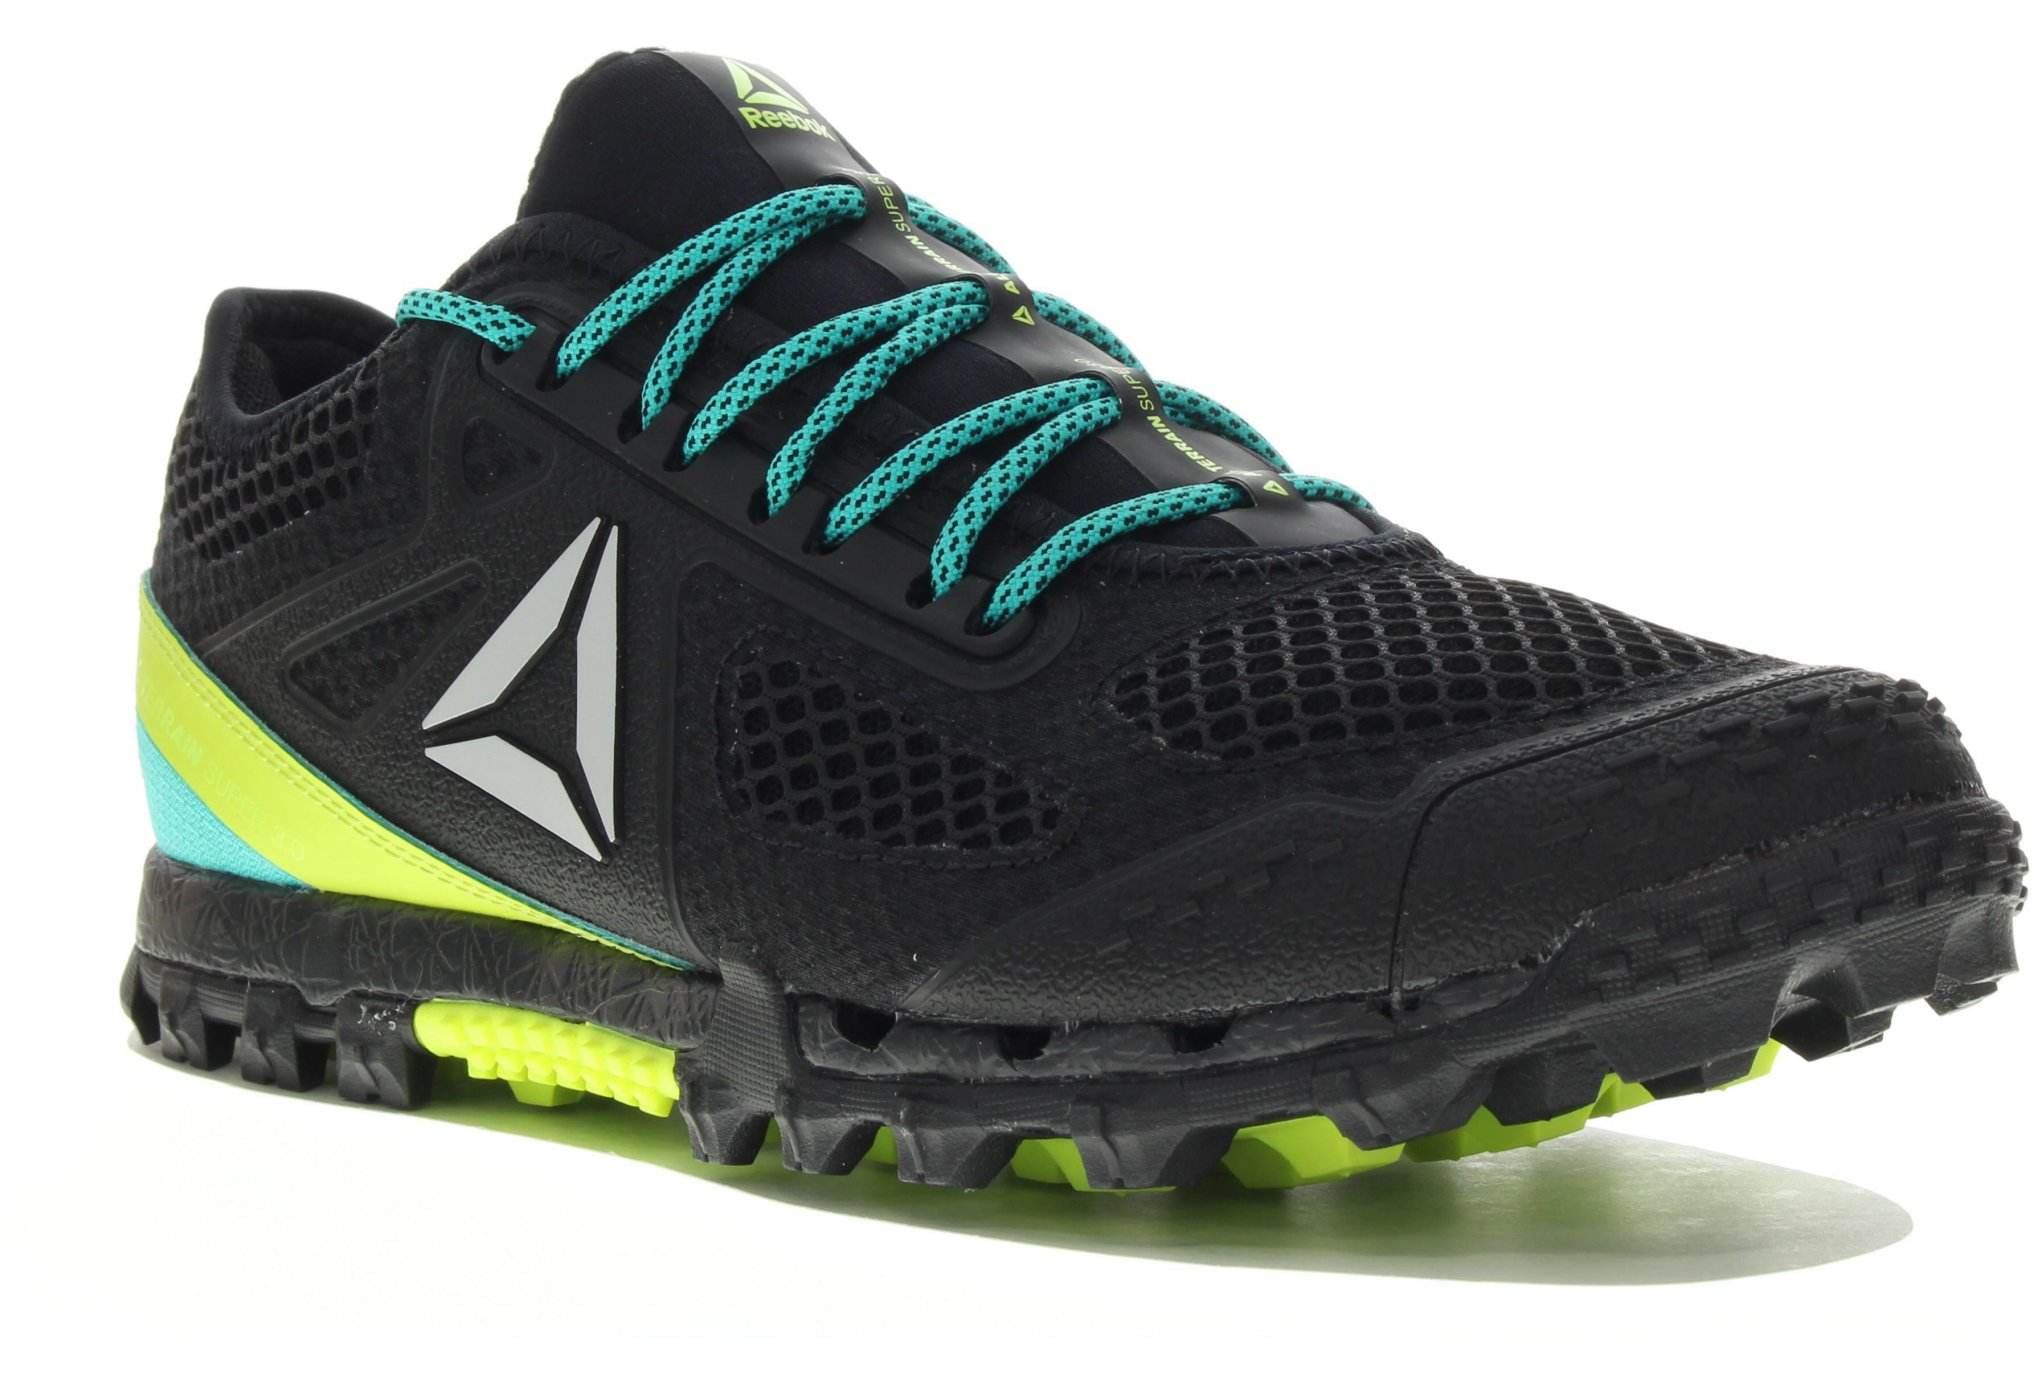 e7d149831 Reebok All Terrain Super  Características - Zapatillas Running